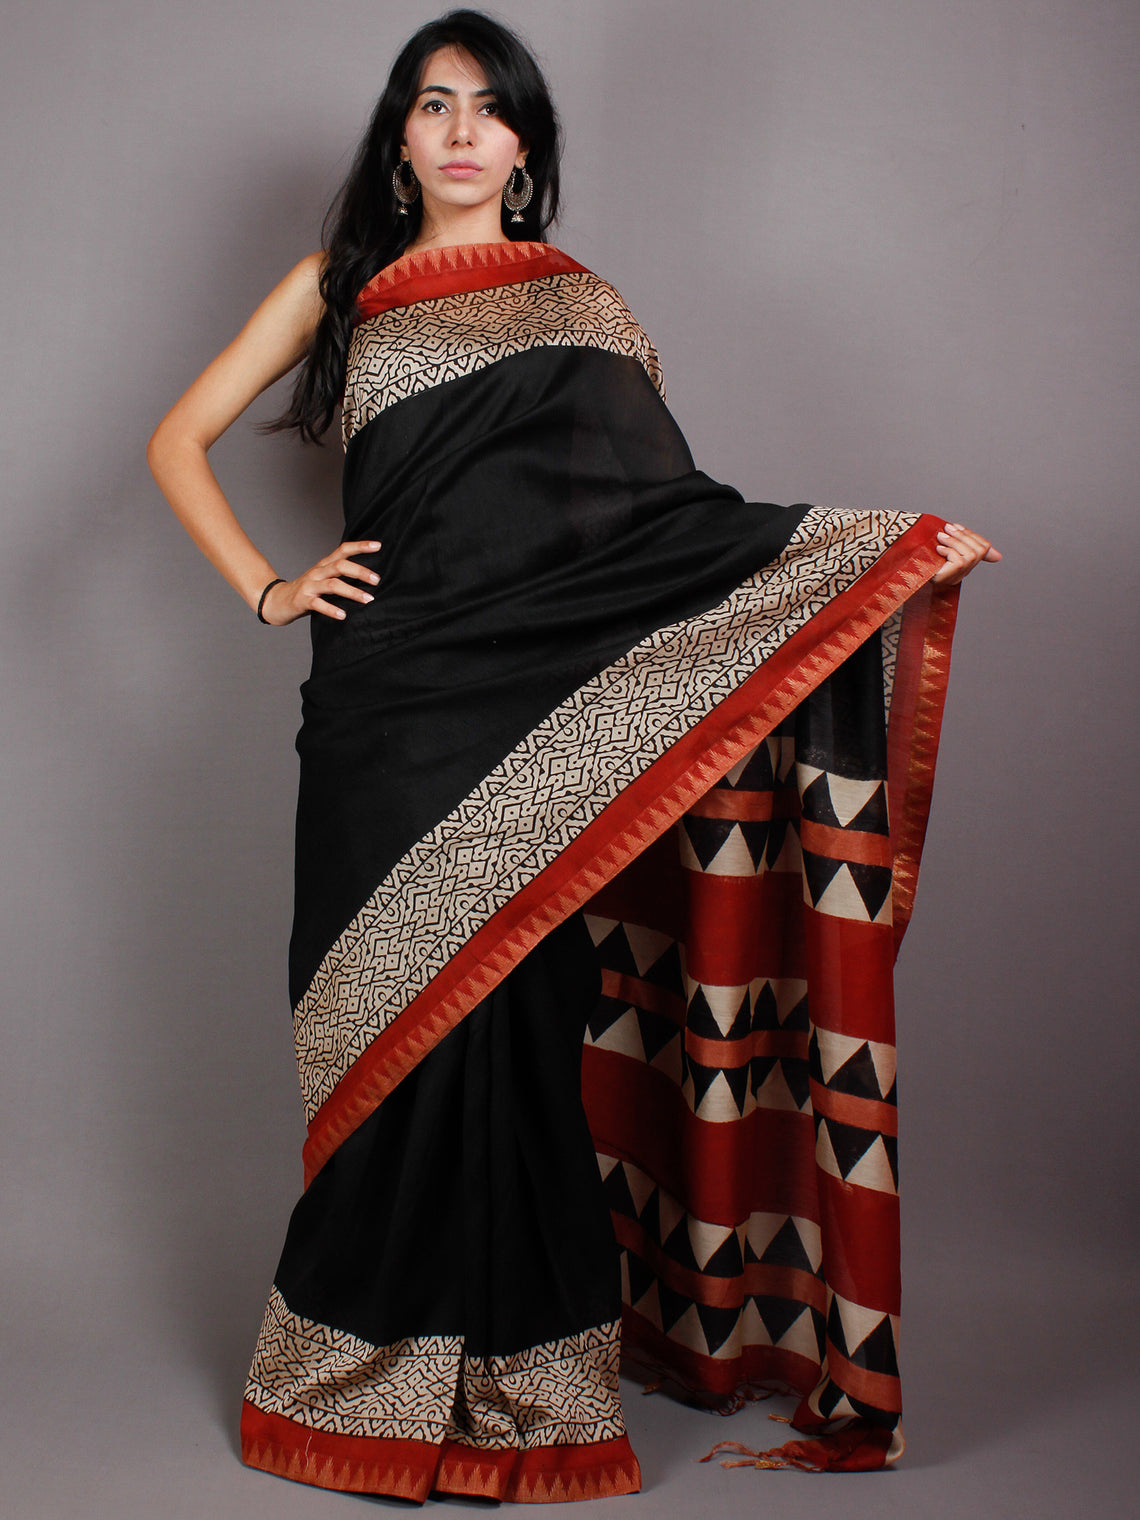 Black Beige Red Block Printed & Painted in Natural Vegetable Colors Chanderi Saree With Geecha Border - S03170546